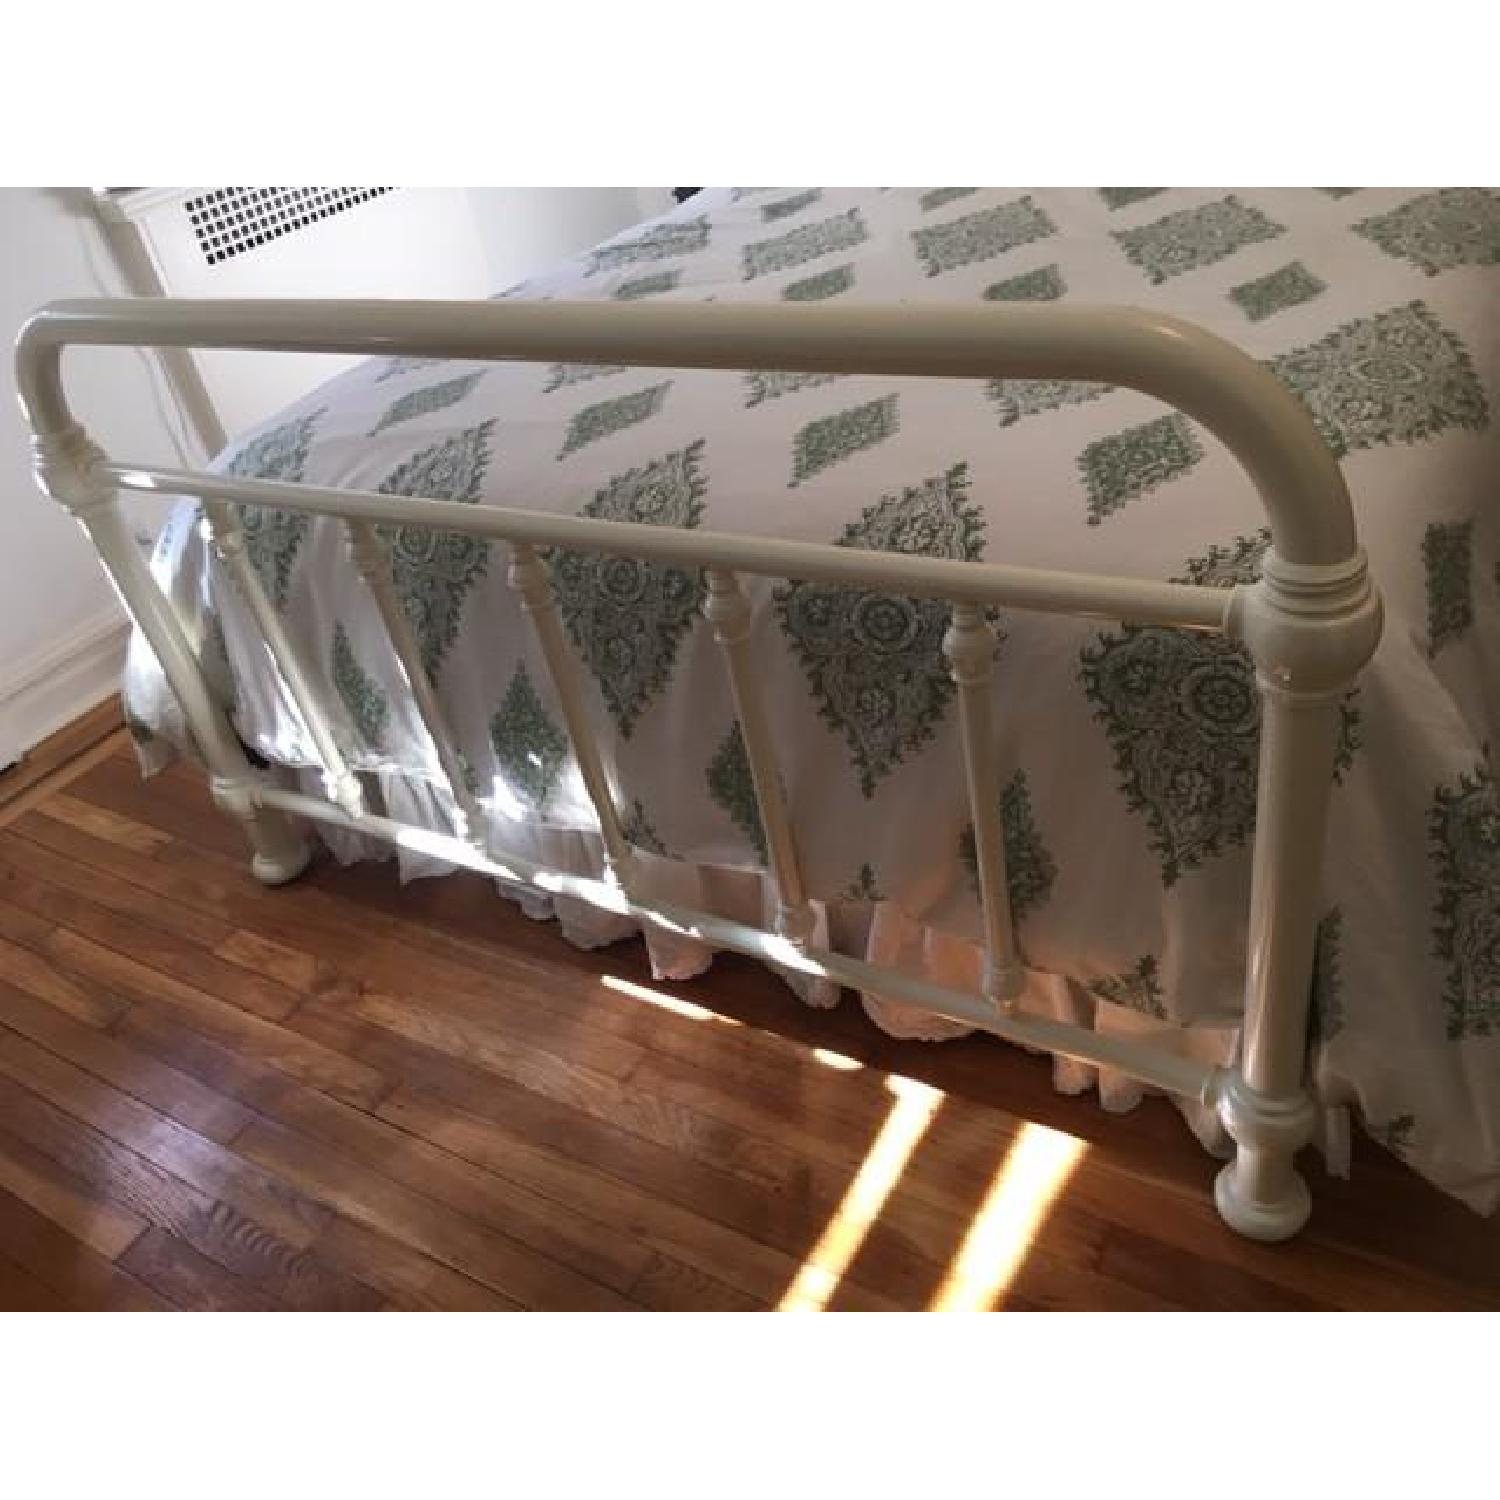 Pottery Barn Coleman White Iron Queen Bed Frame - image-4